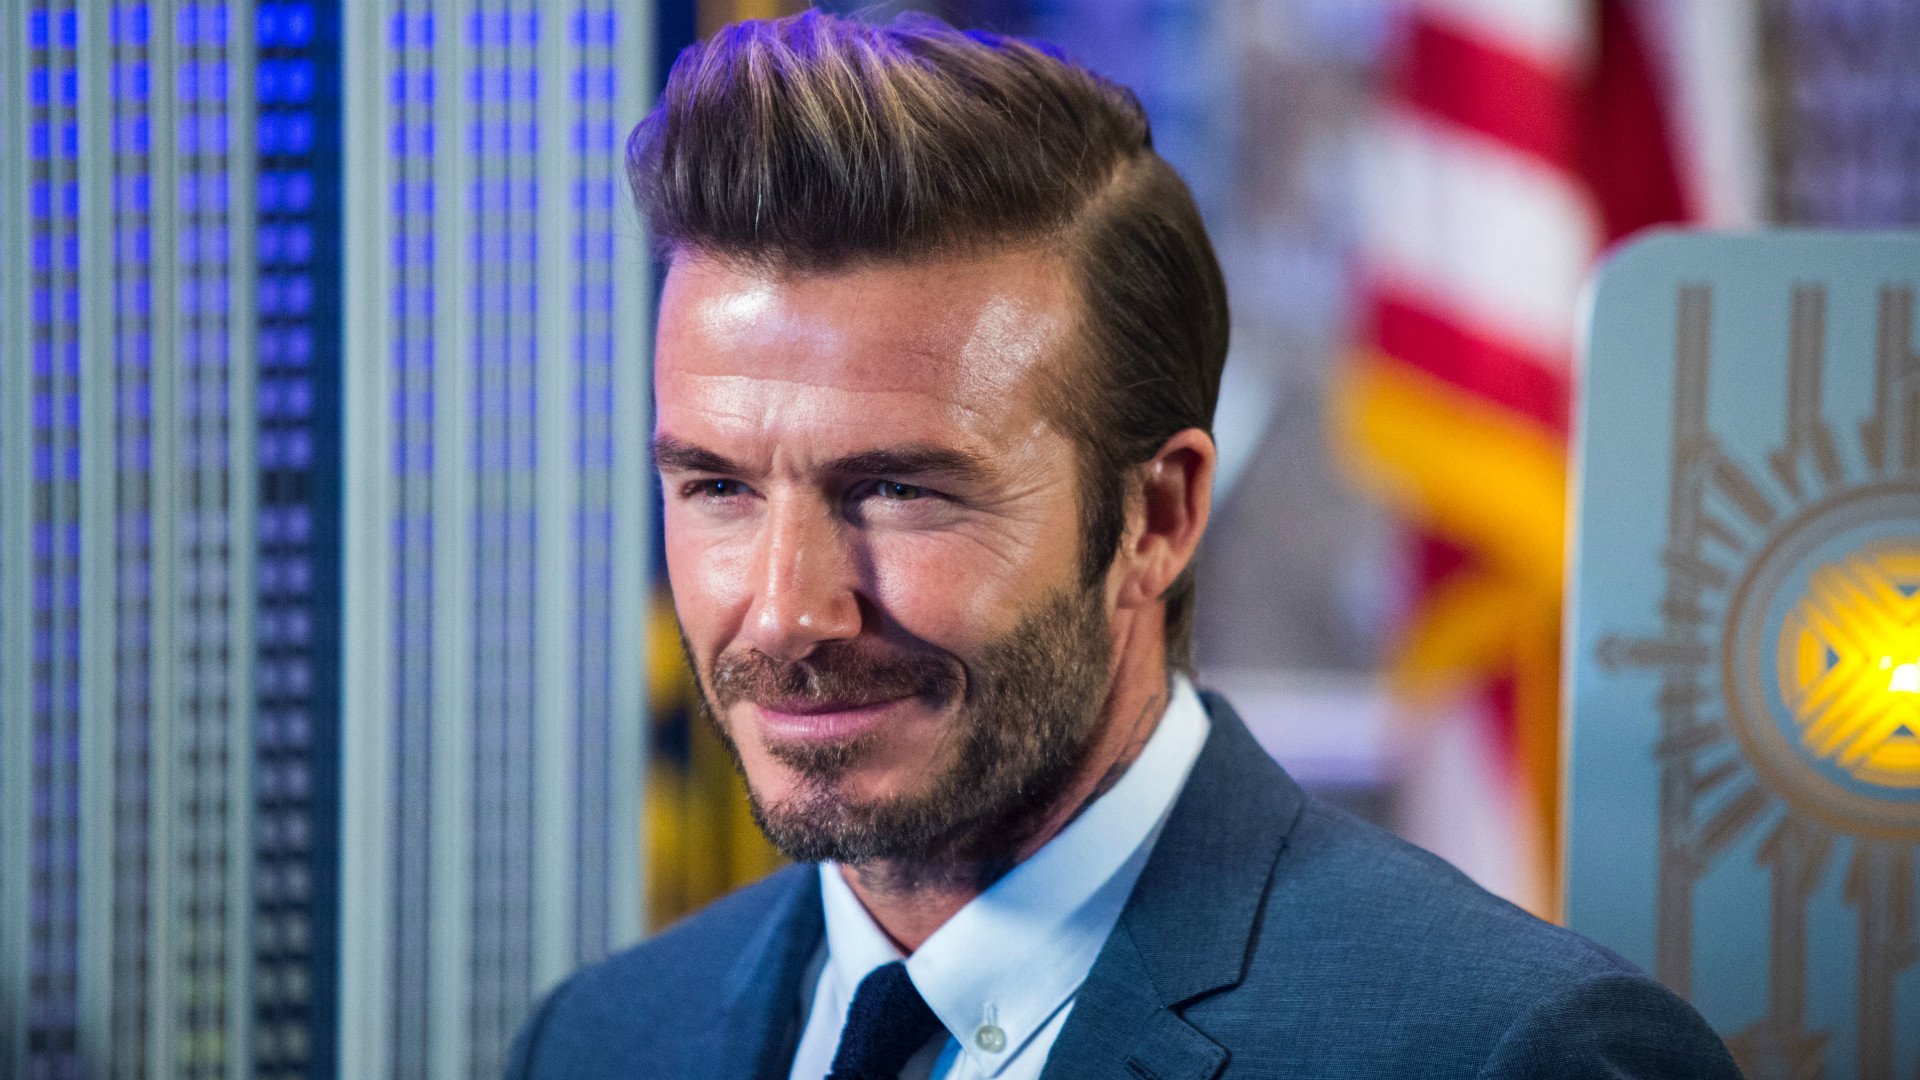 David beckham q a how old is the ex england captain and - David beckham ...